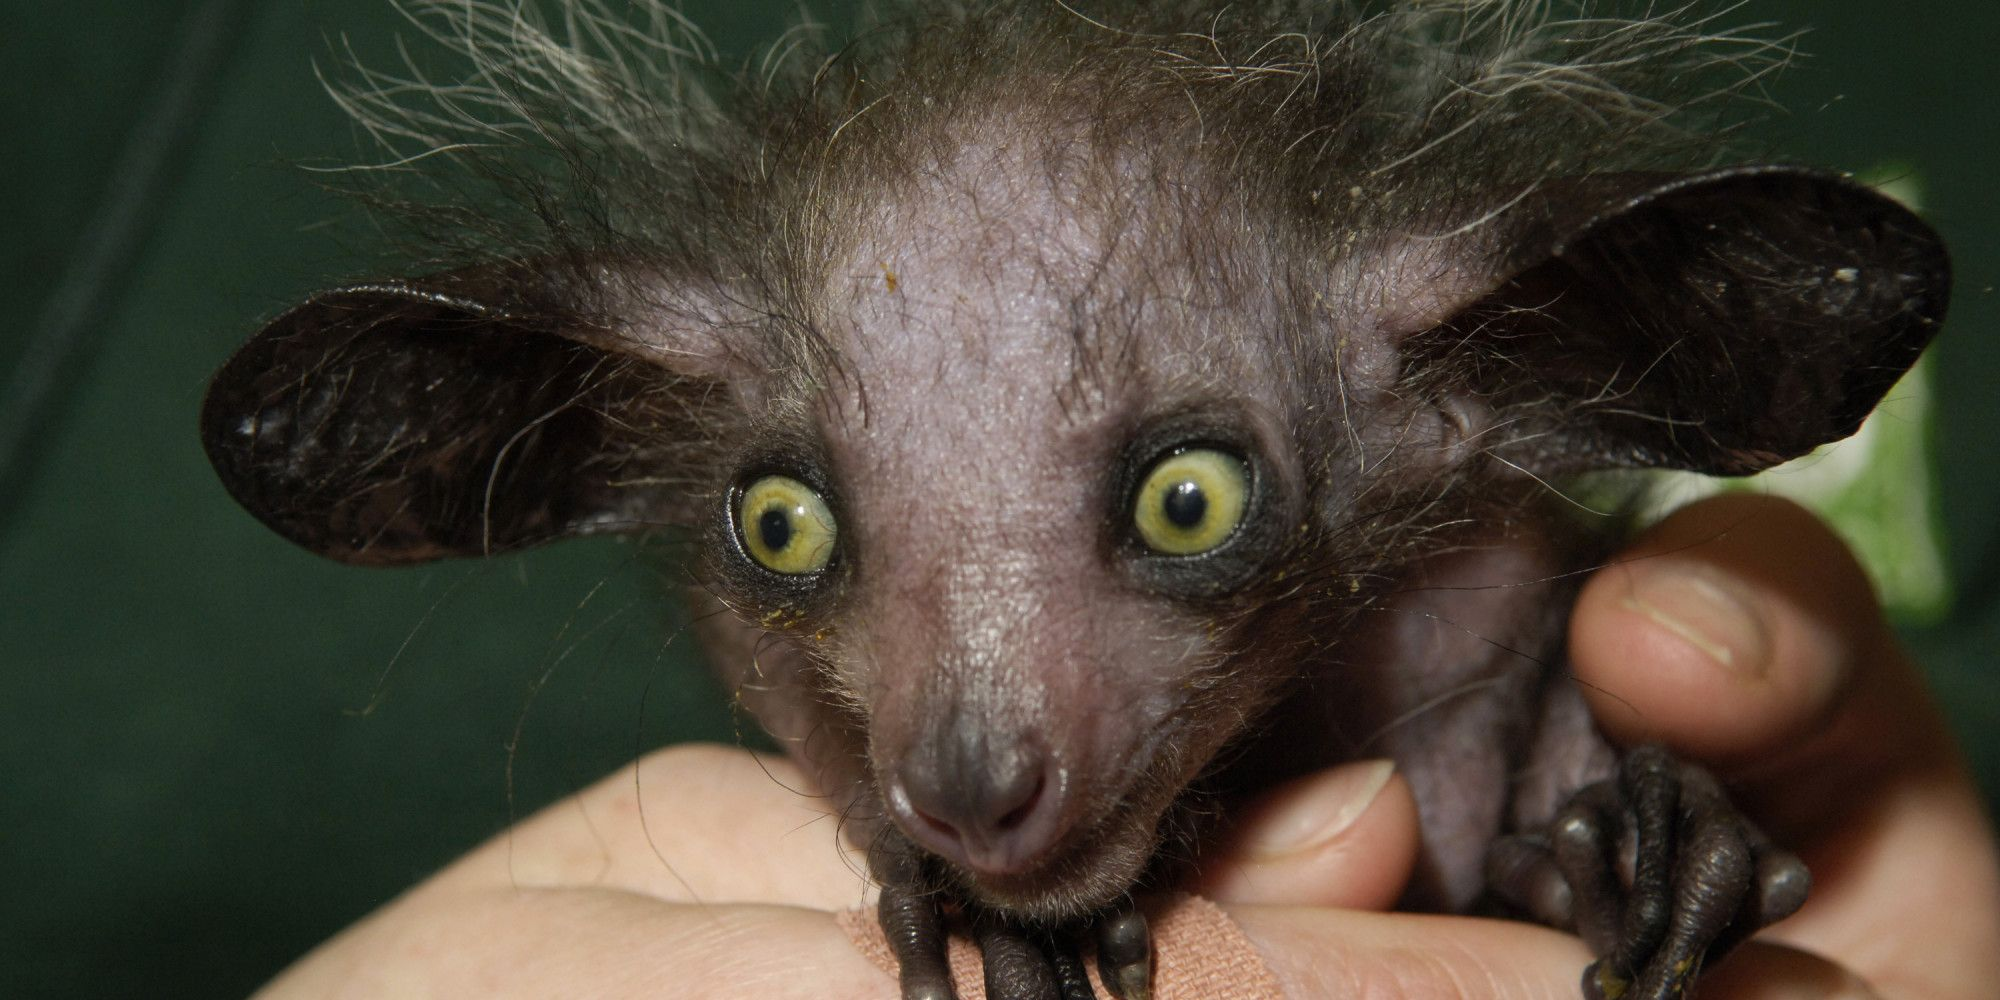 11 Of The Scariest Looking Creatures In The Animal Kingdom | Scary animals,  Weird looking animals, Bizarre animals